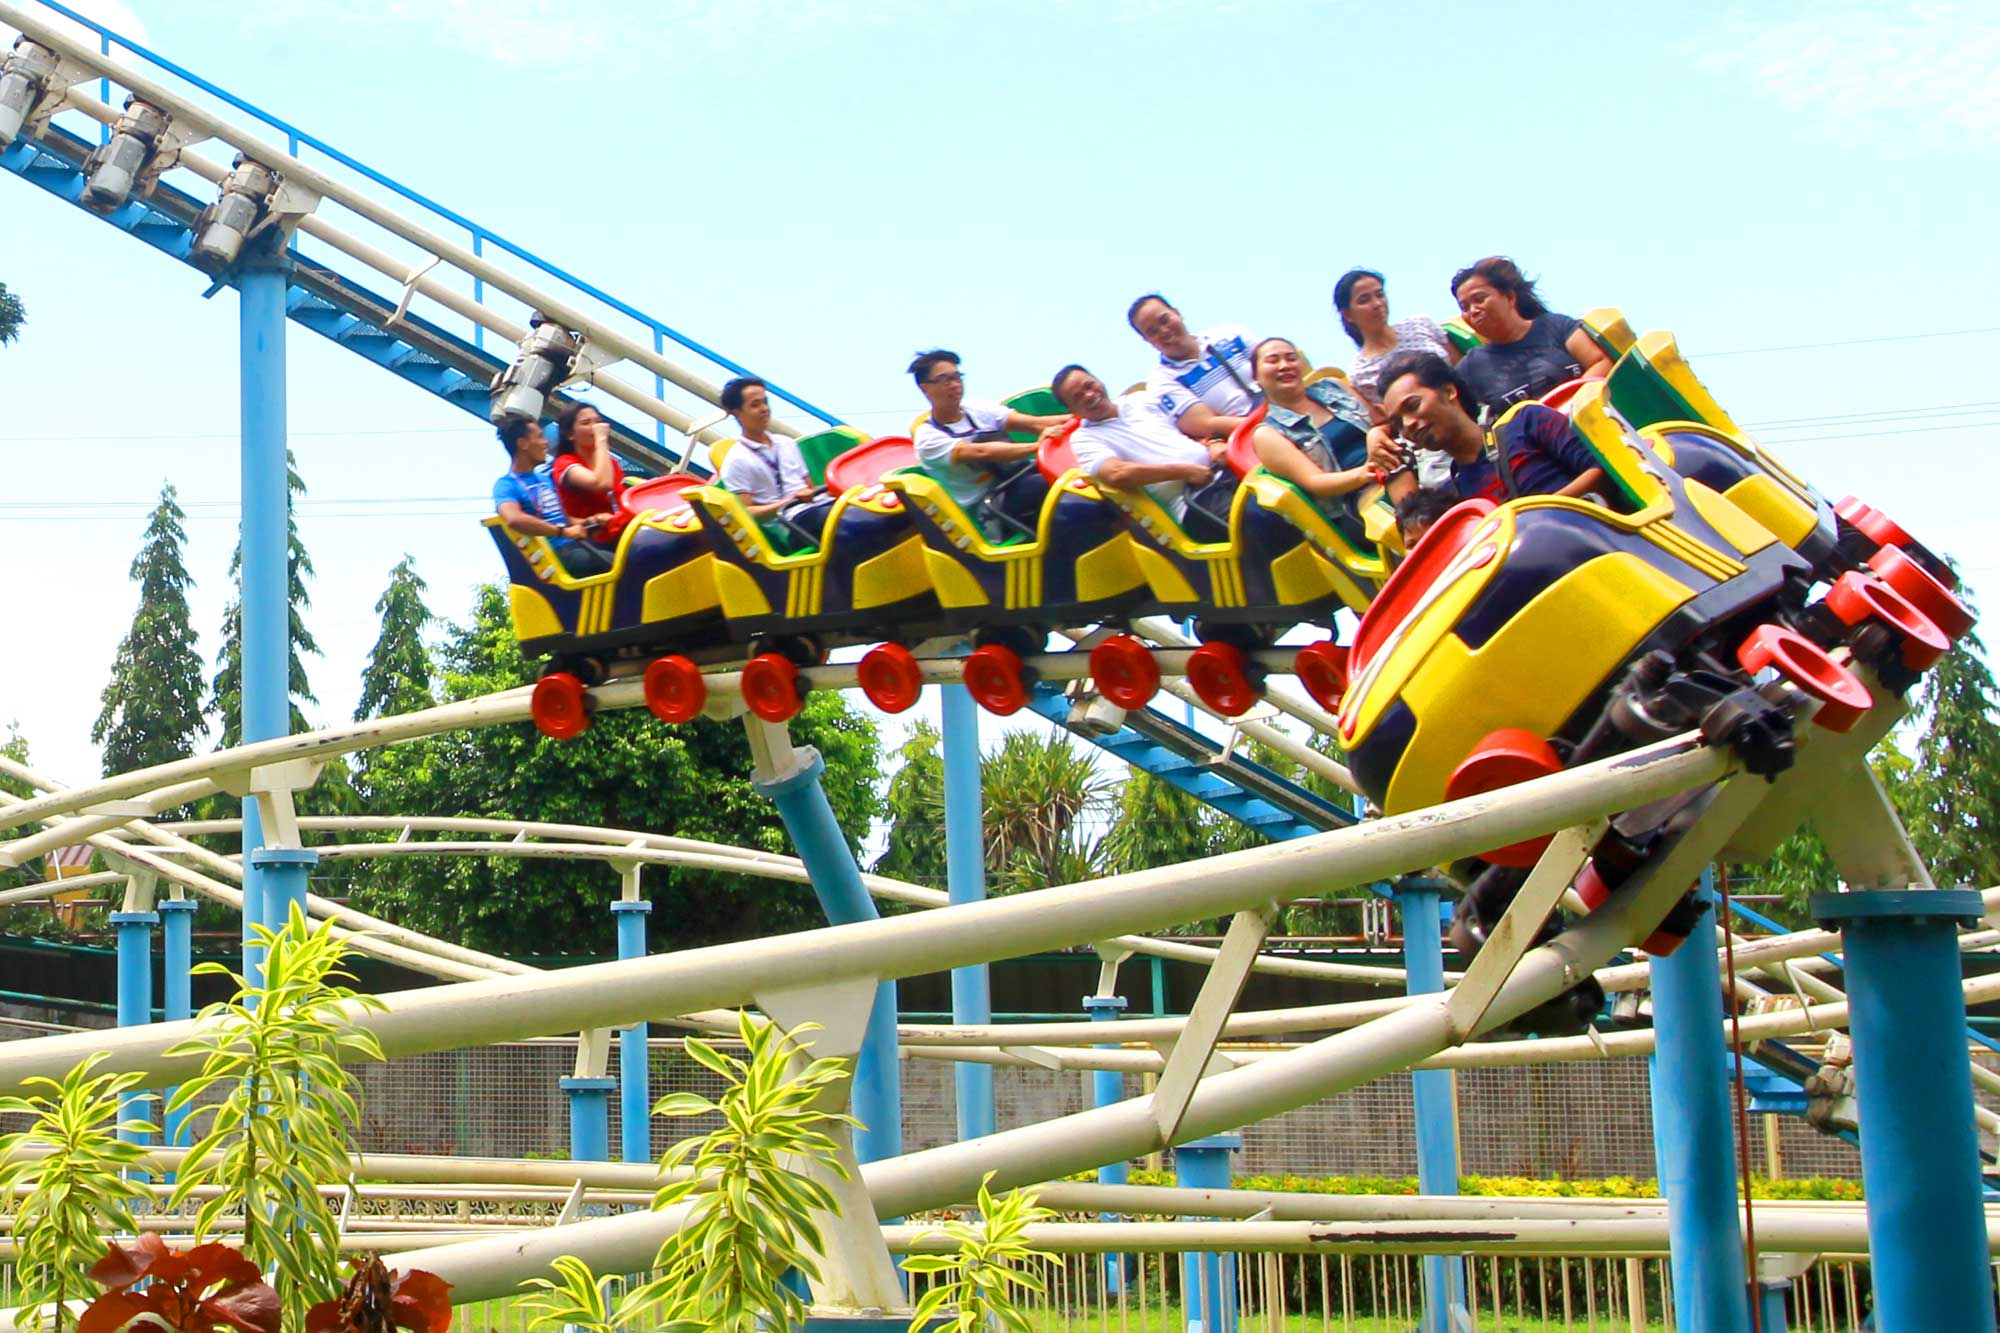 Enchanted Kingdom Unli-Ride Ticket + Agila the EKsperience Admission Ticket (QR Code Direct Entry)